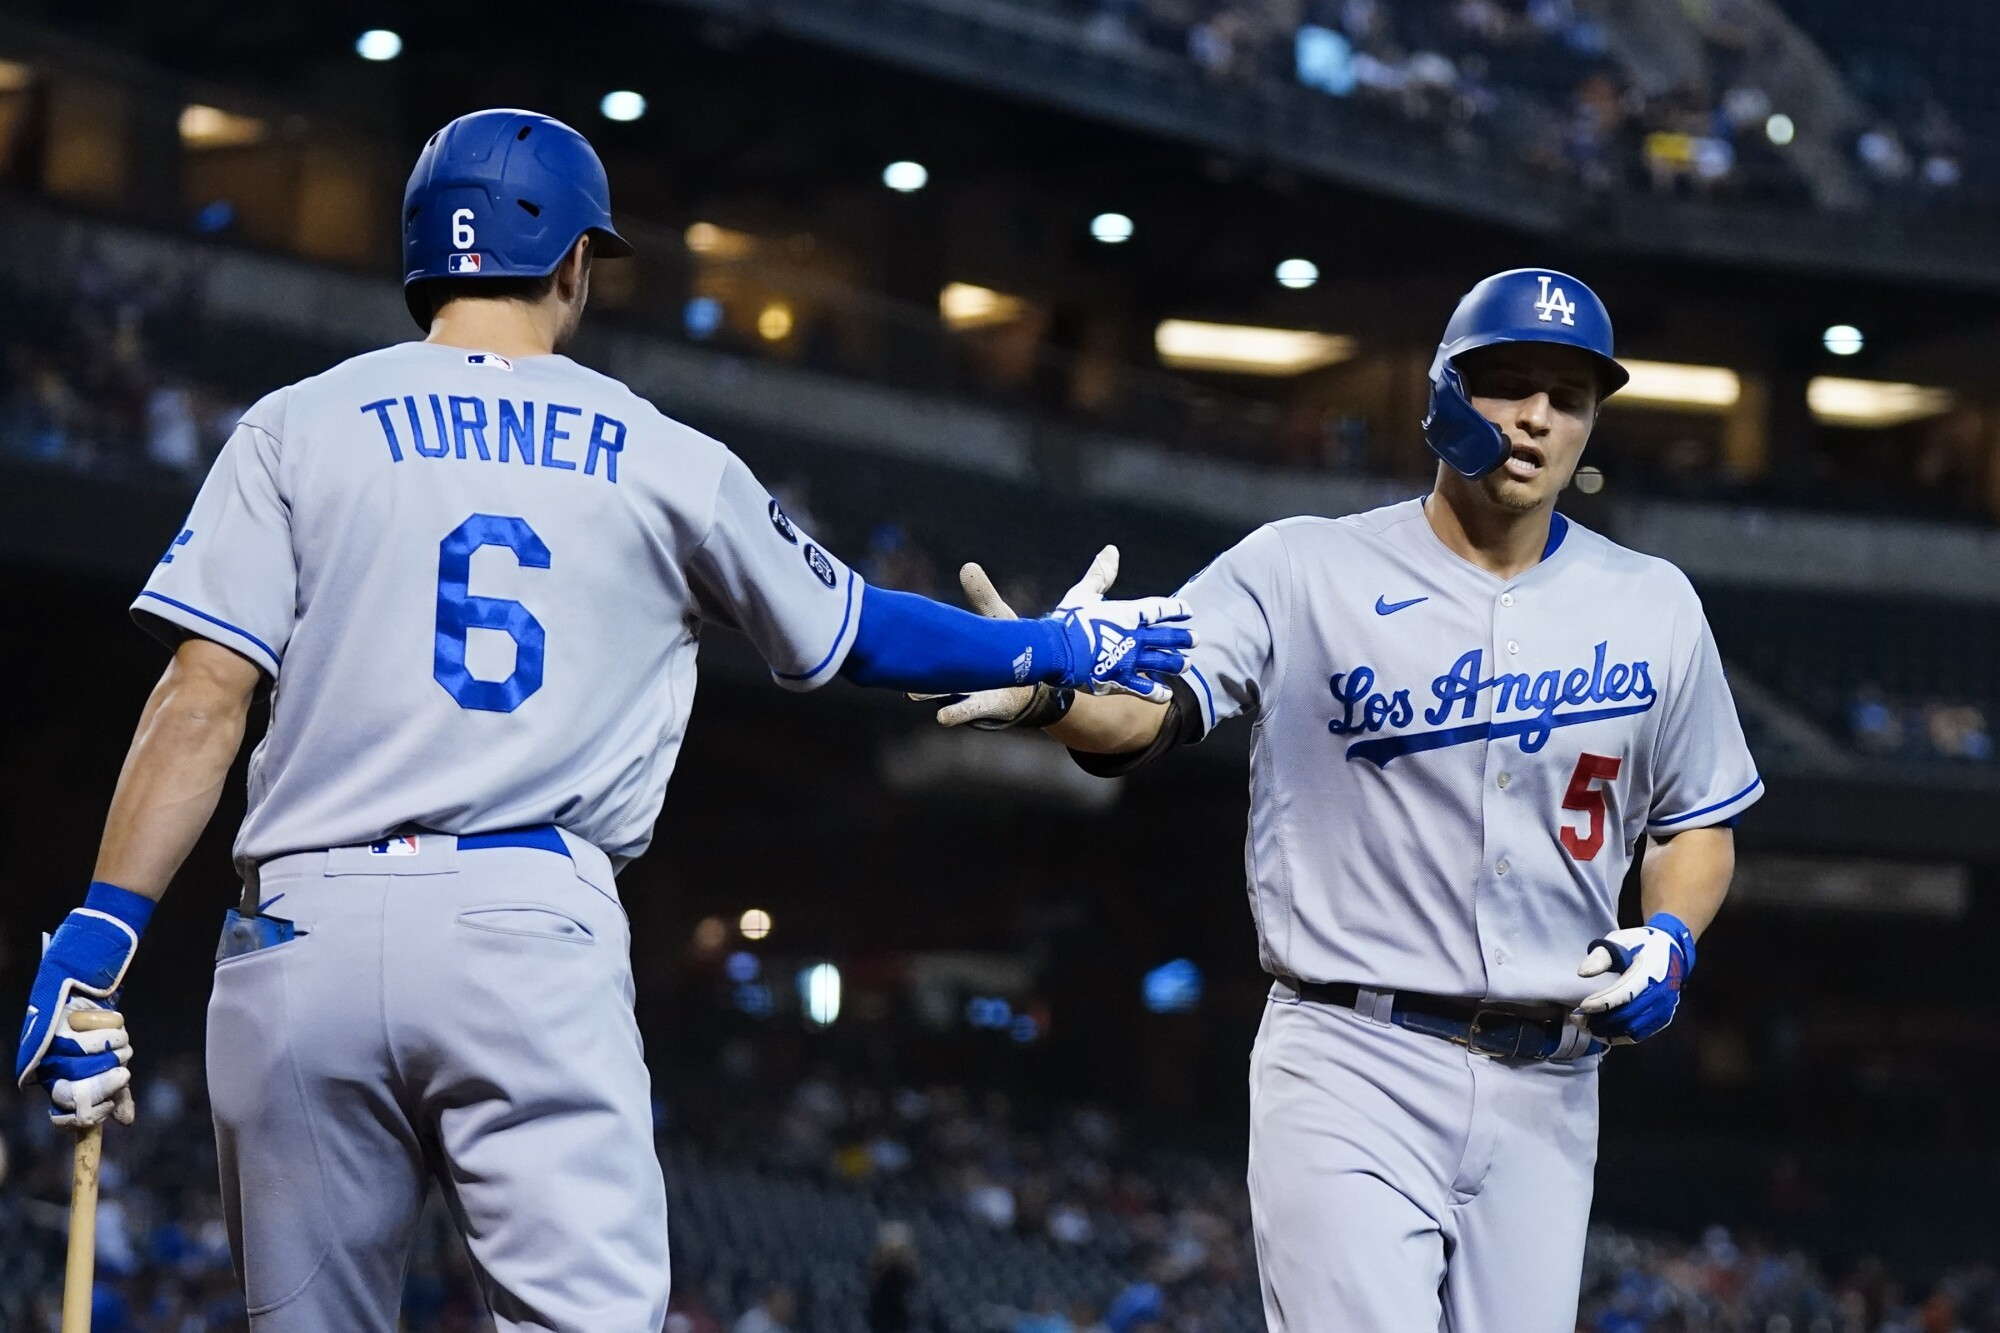 Corey Seager celebrates his first-inning home run with Trea Turner, who homered himself moments later.